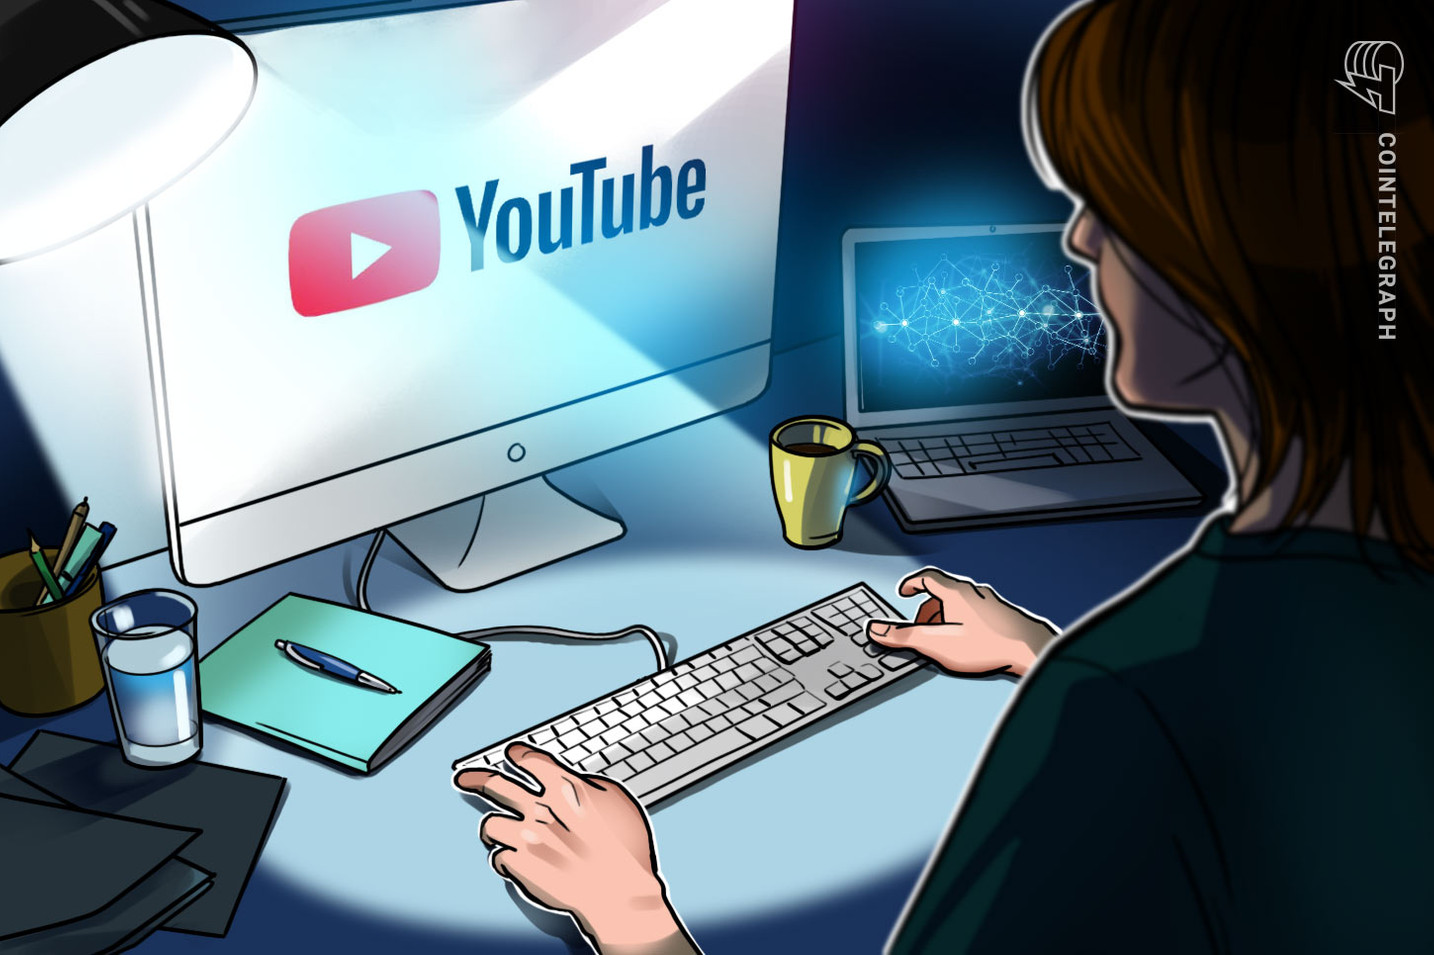 YouTube pulls the plug on another crypto livestream